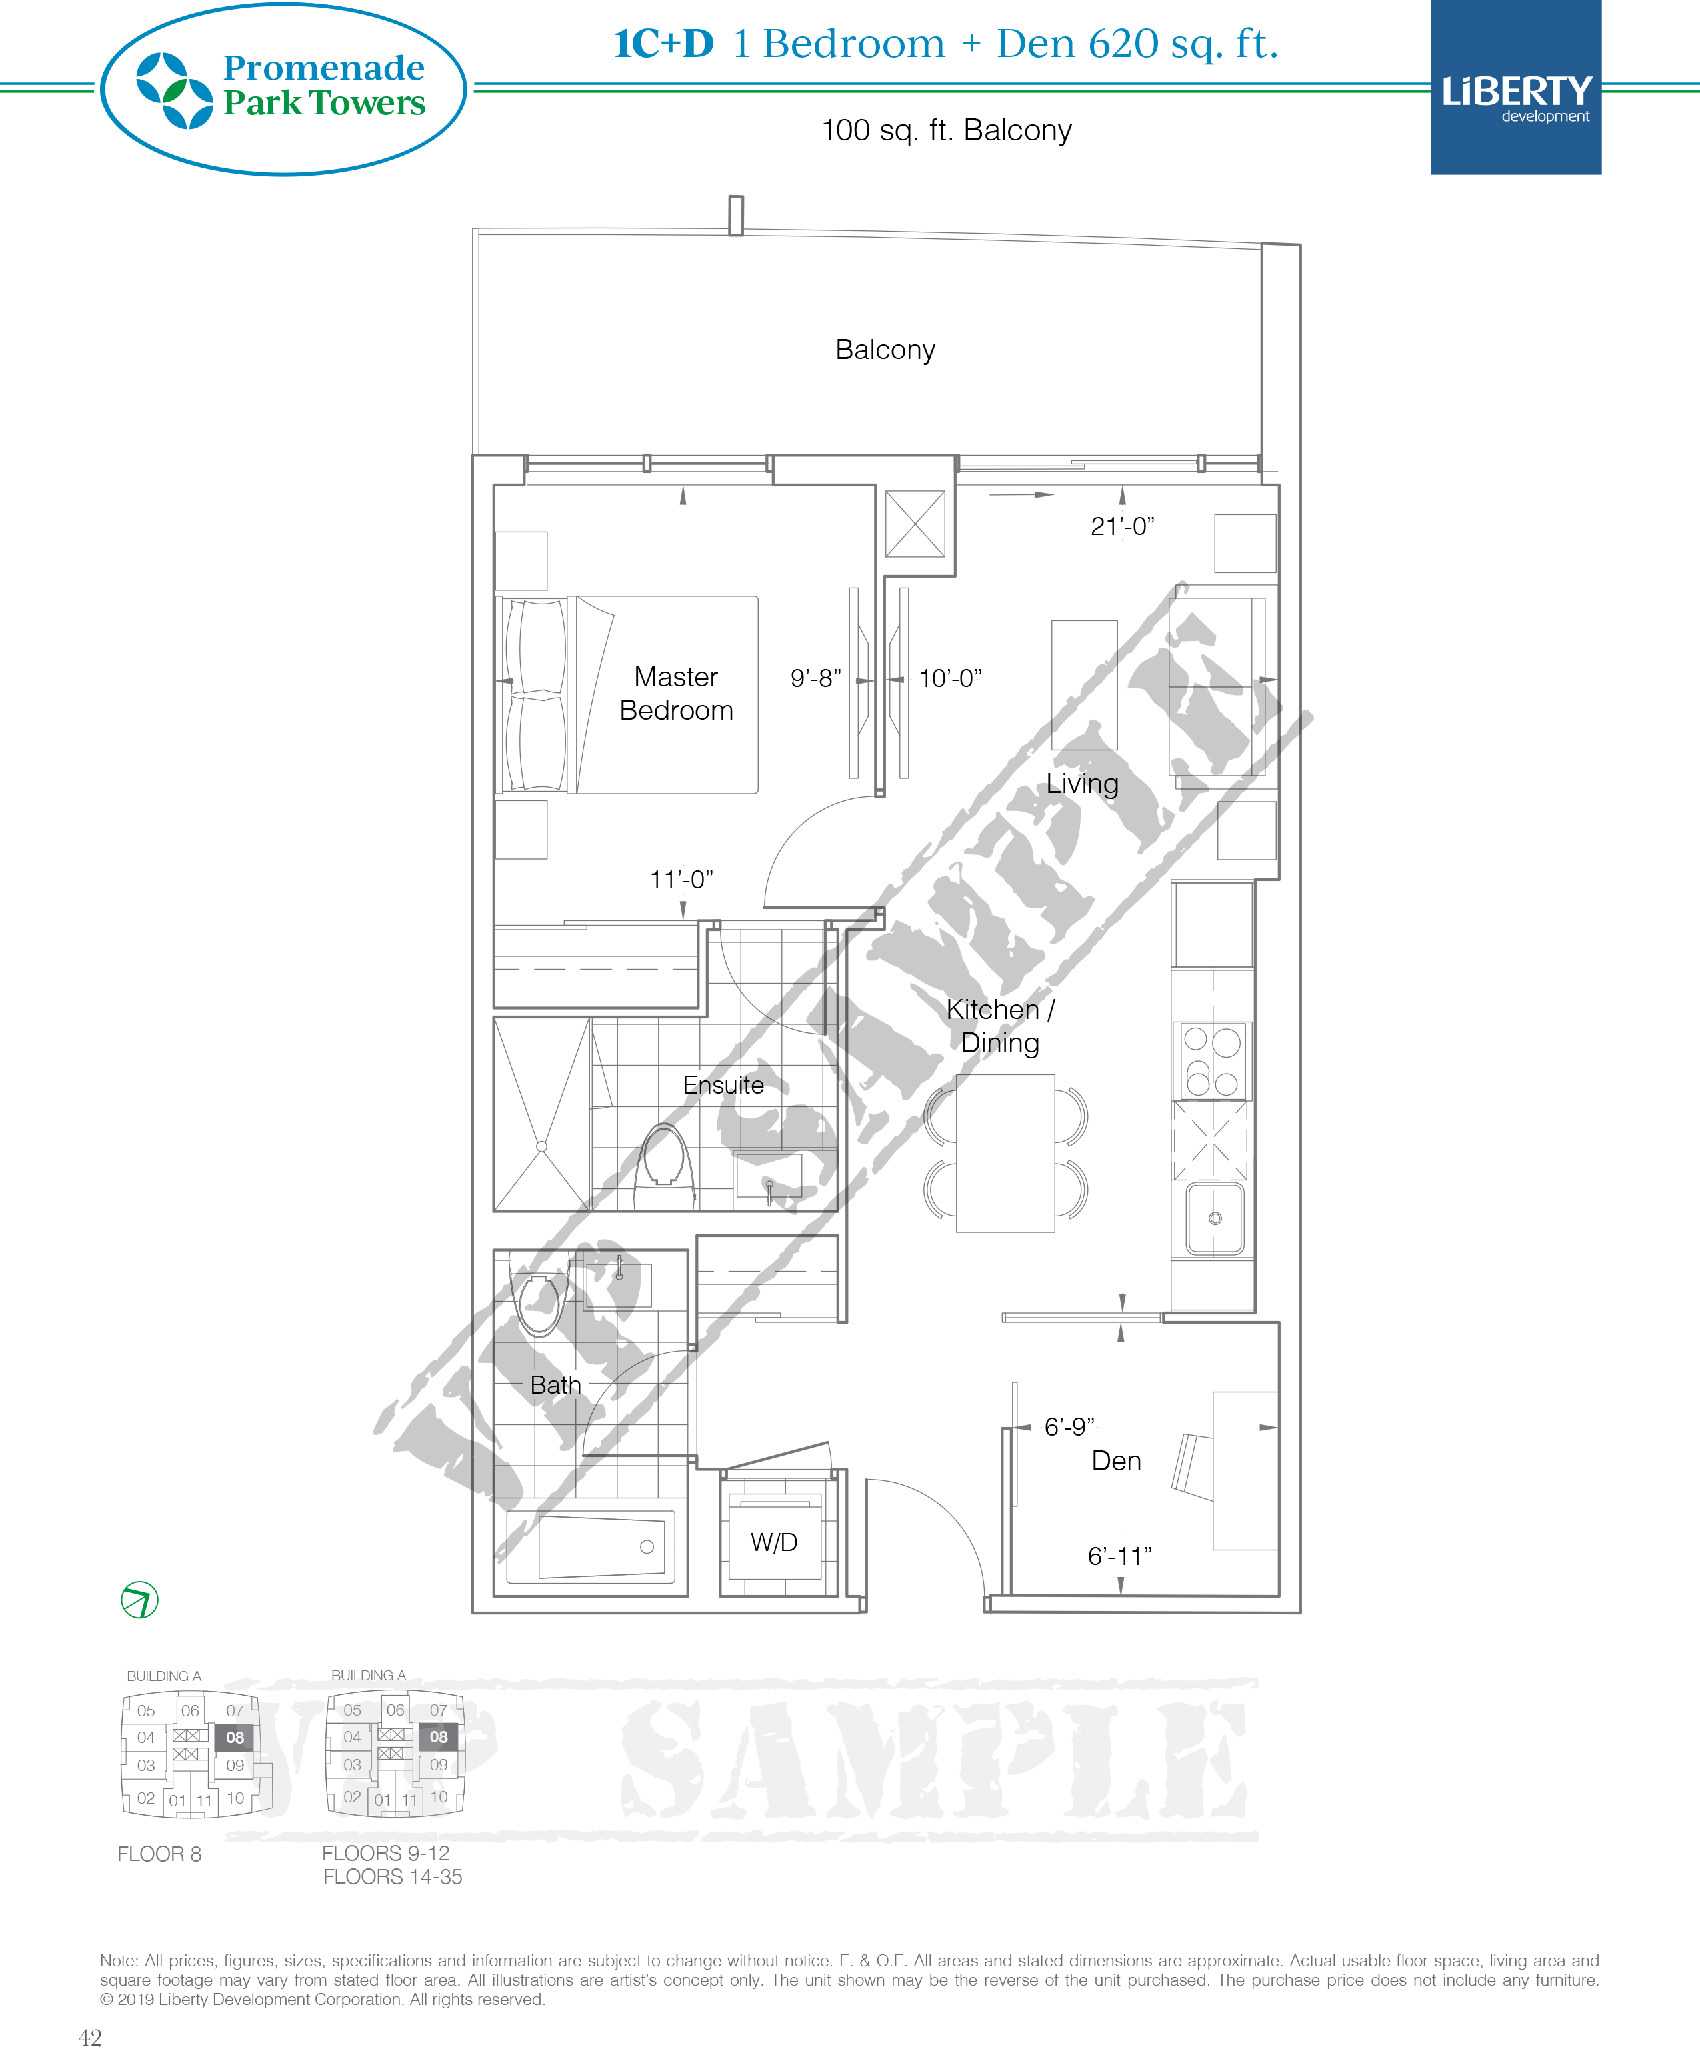 1C+D Floor Plan at Promenade Park Towers Condos - 620 sq.ft